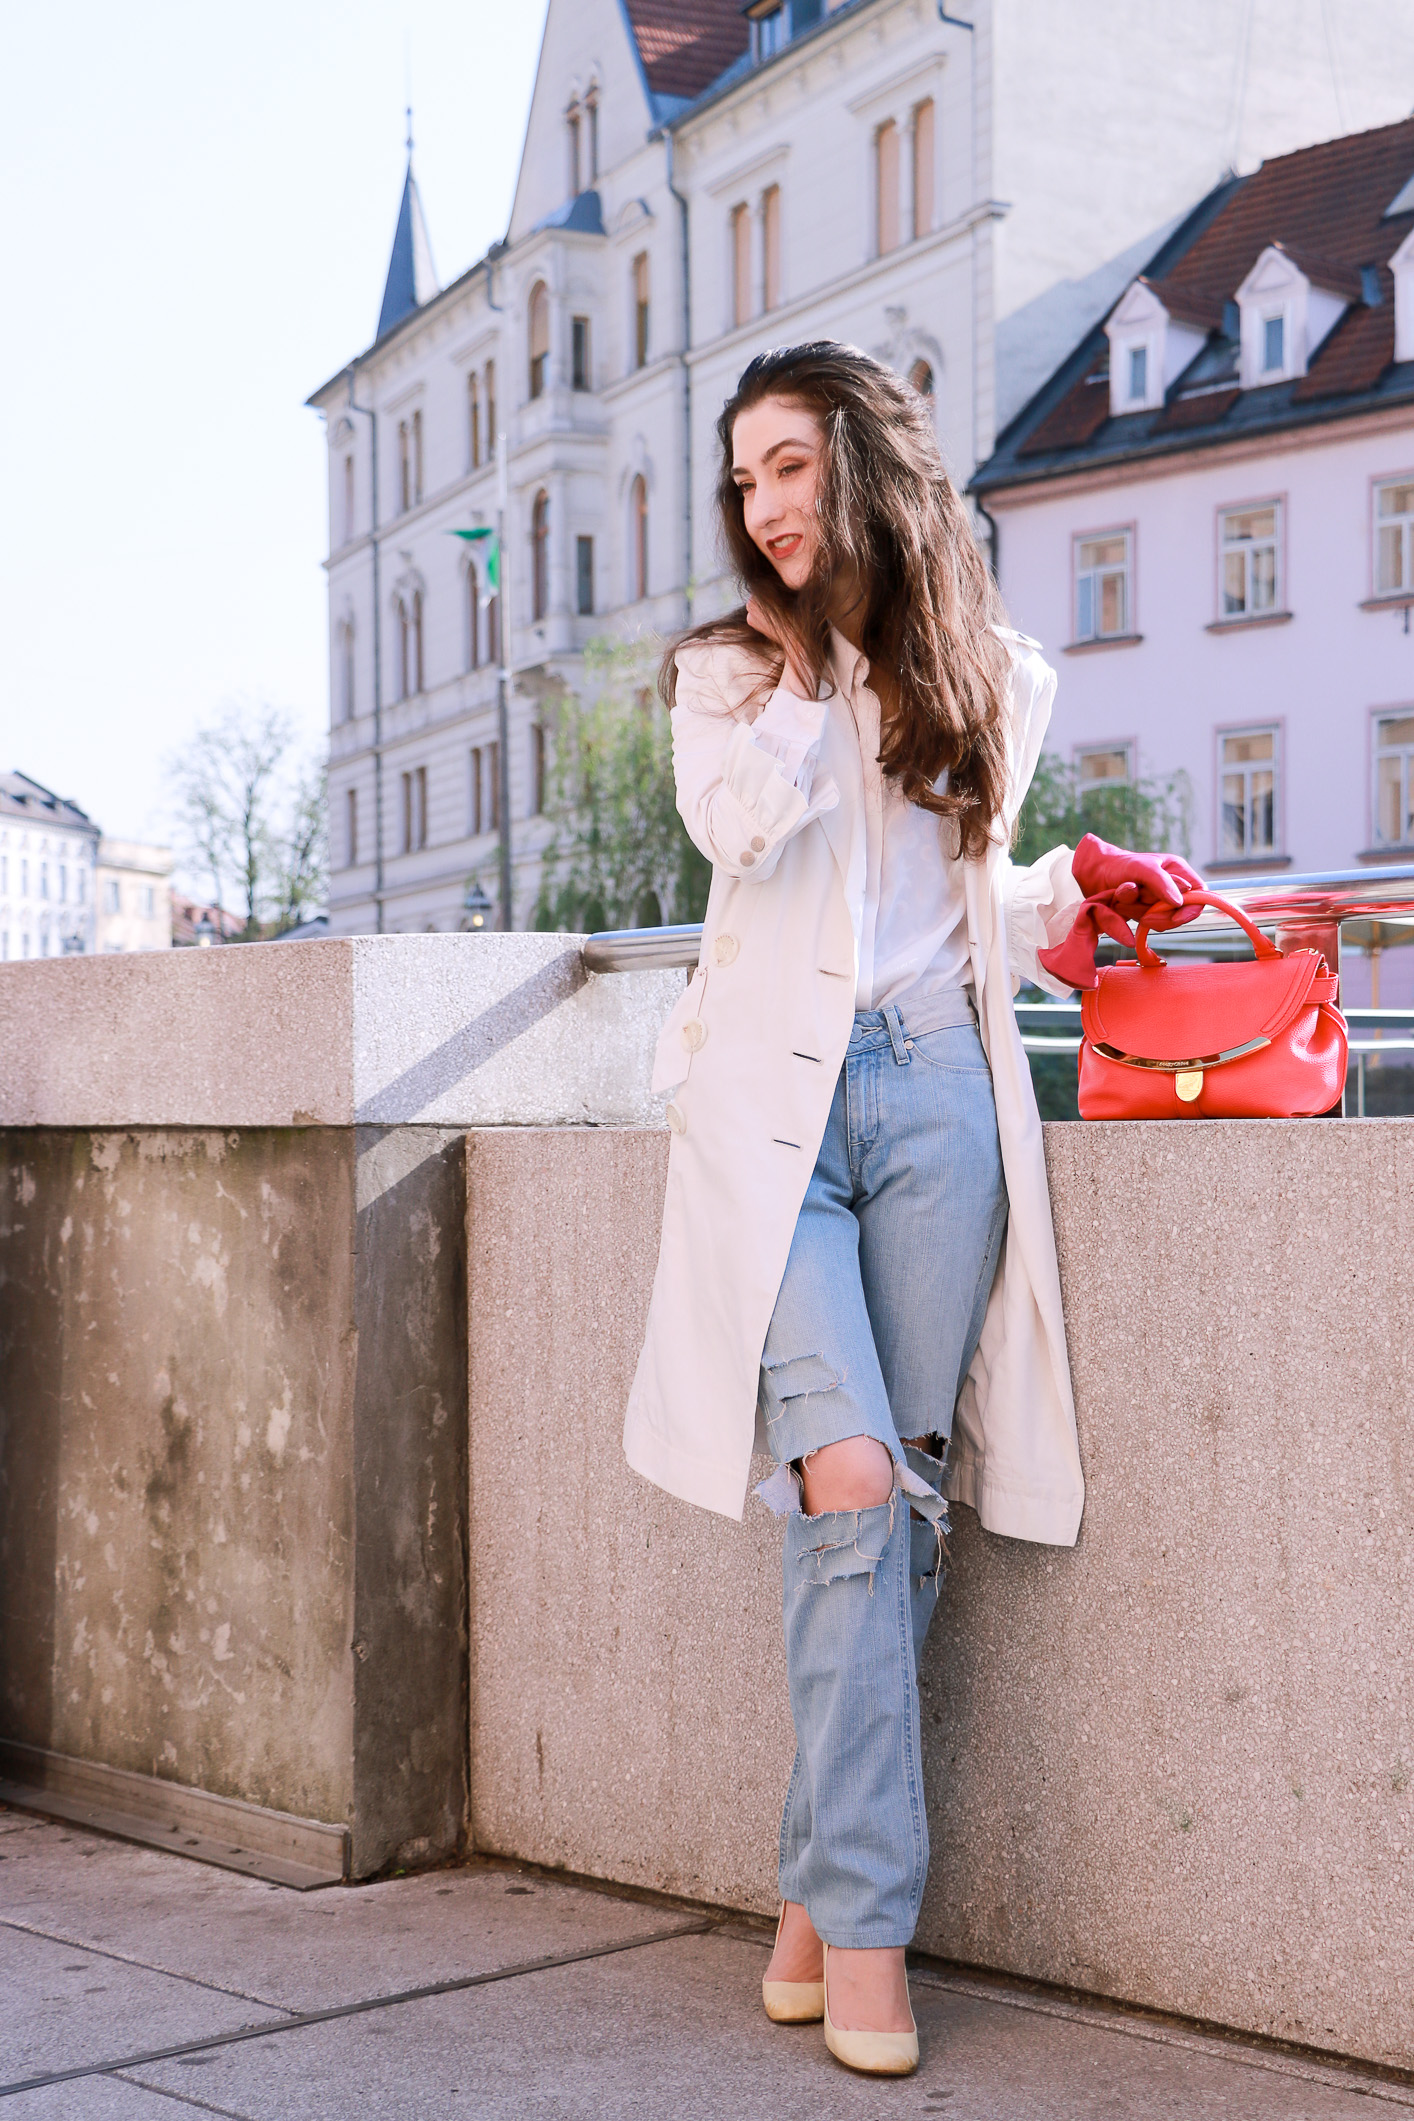 Fashion blogger Veronika Lipar of Brunette From Wall Street sharing her sexy street style in light blue ripped jeans and white heels